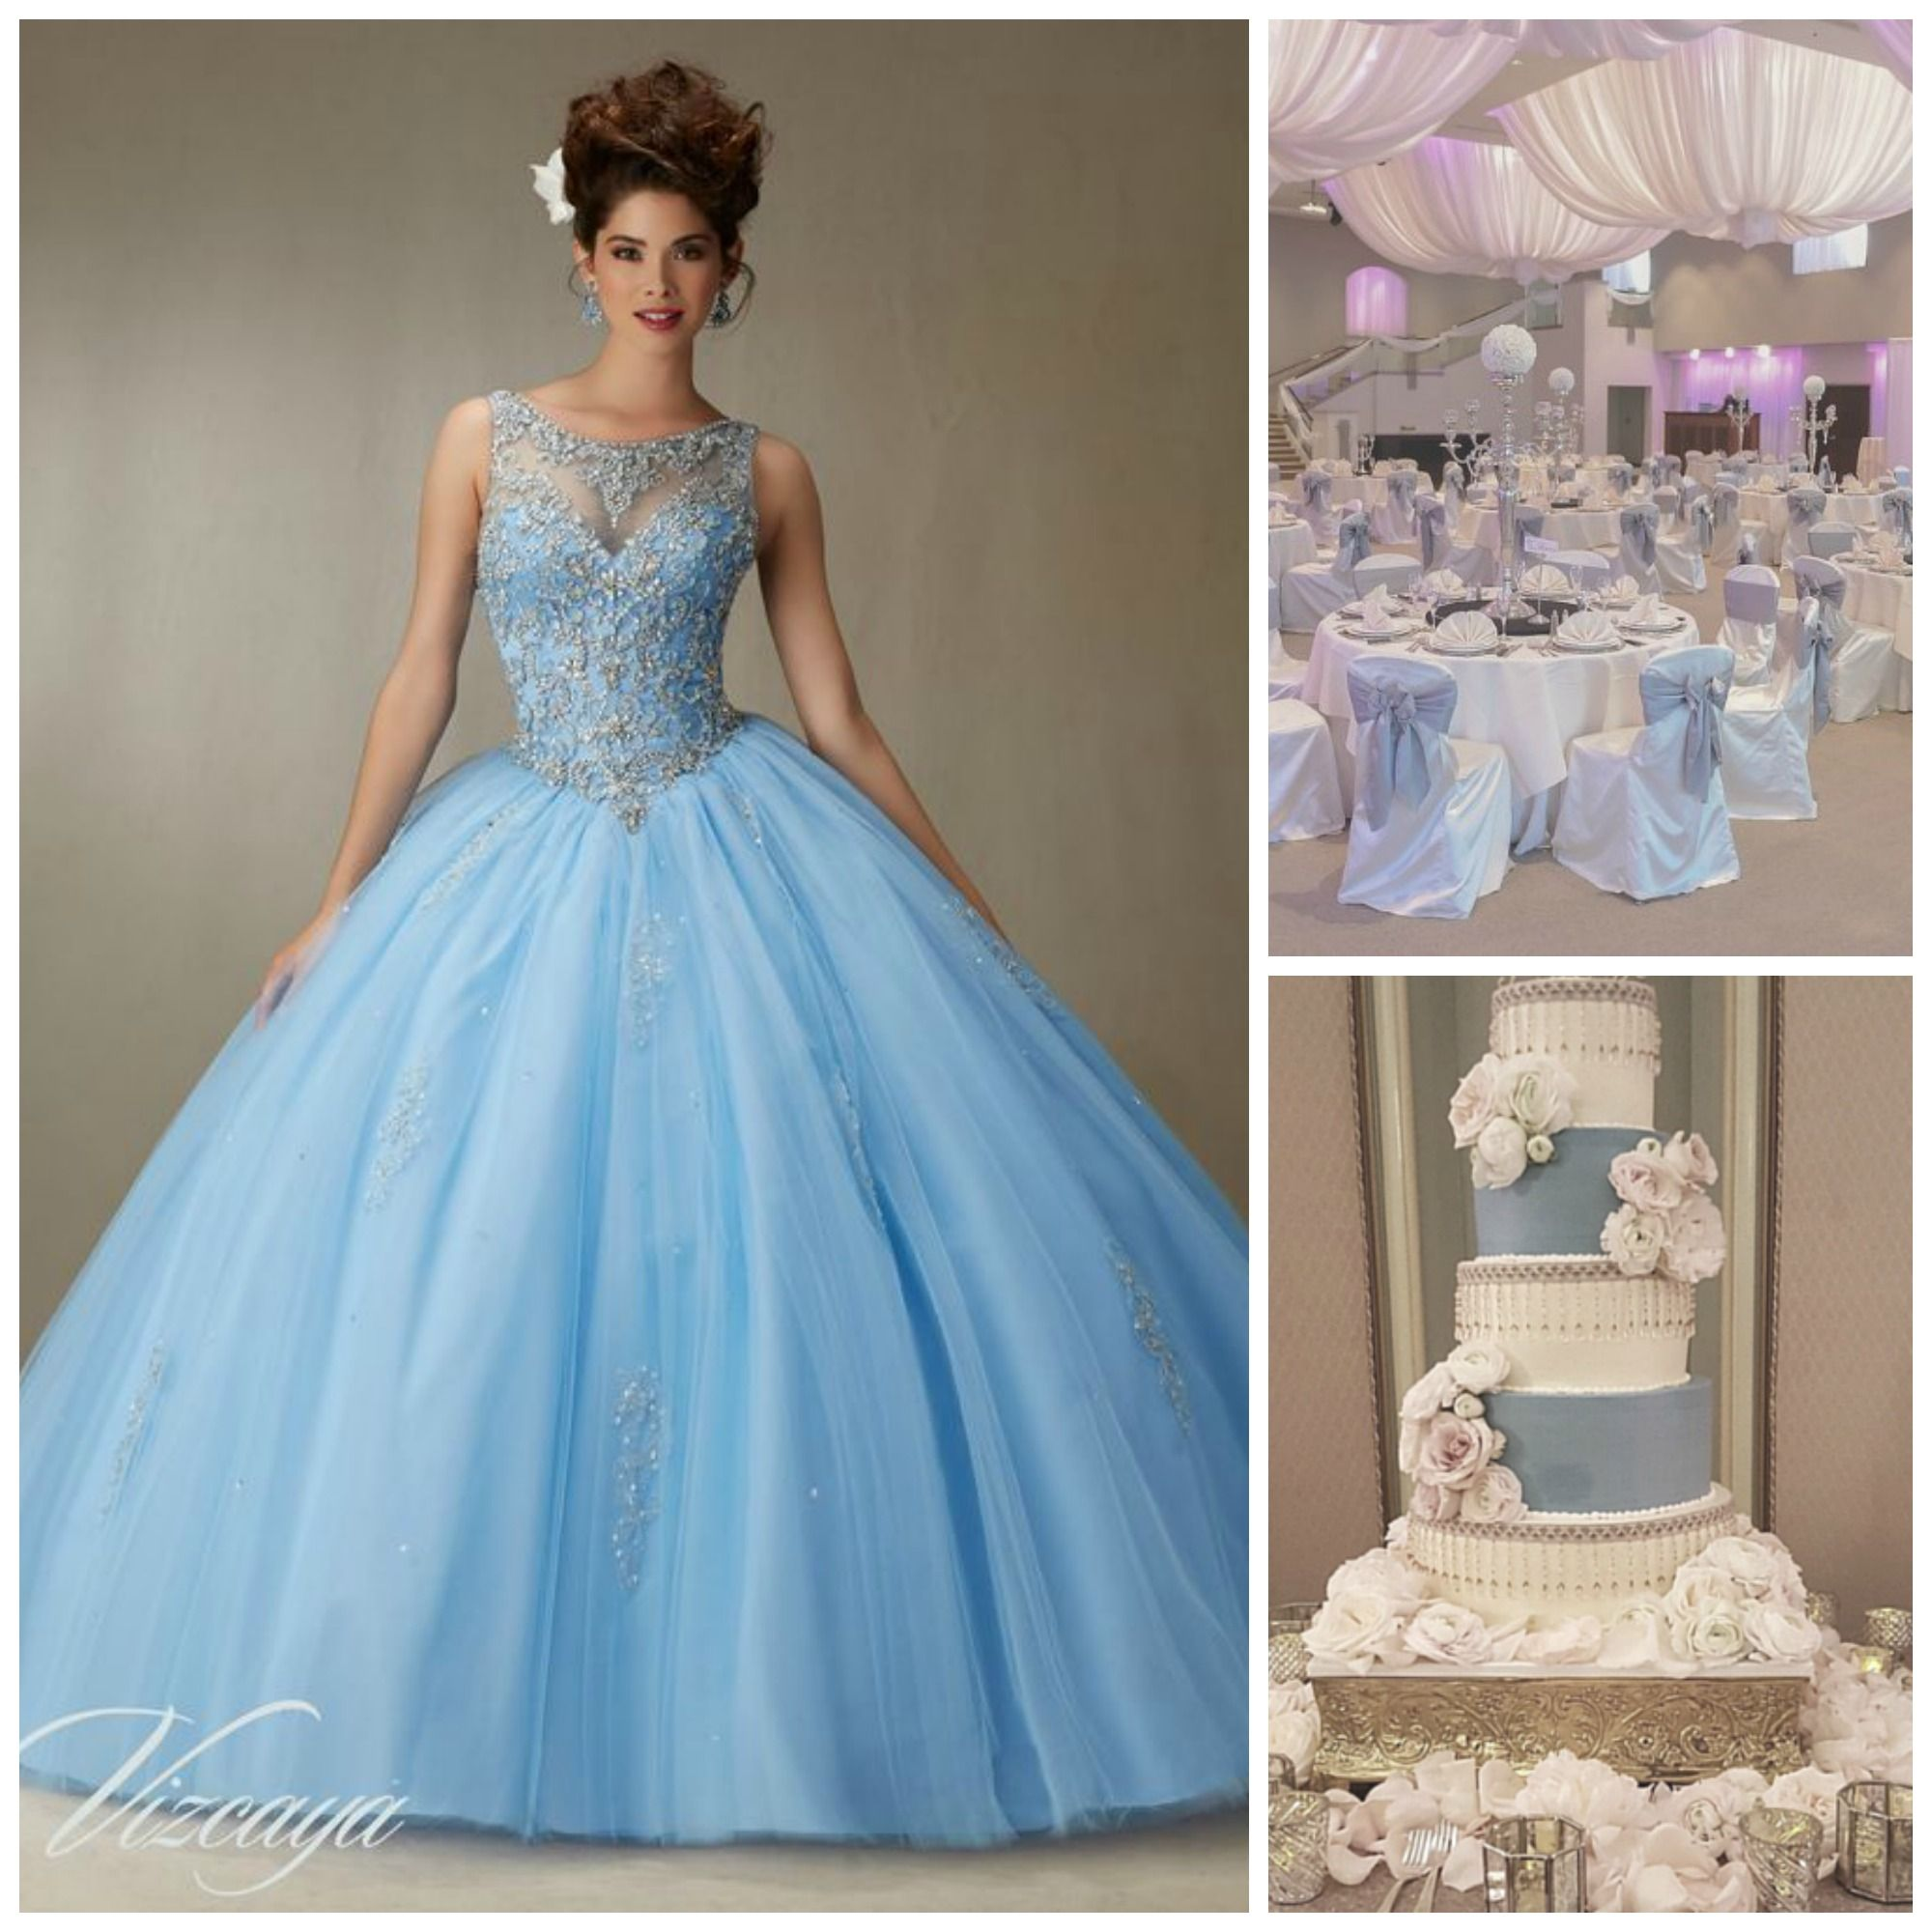 Quince Theme Decorations  Quinceanera dresses blue, Quince